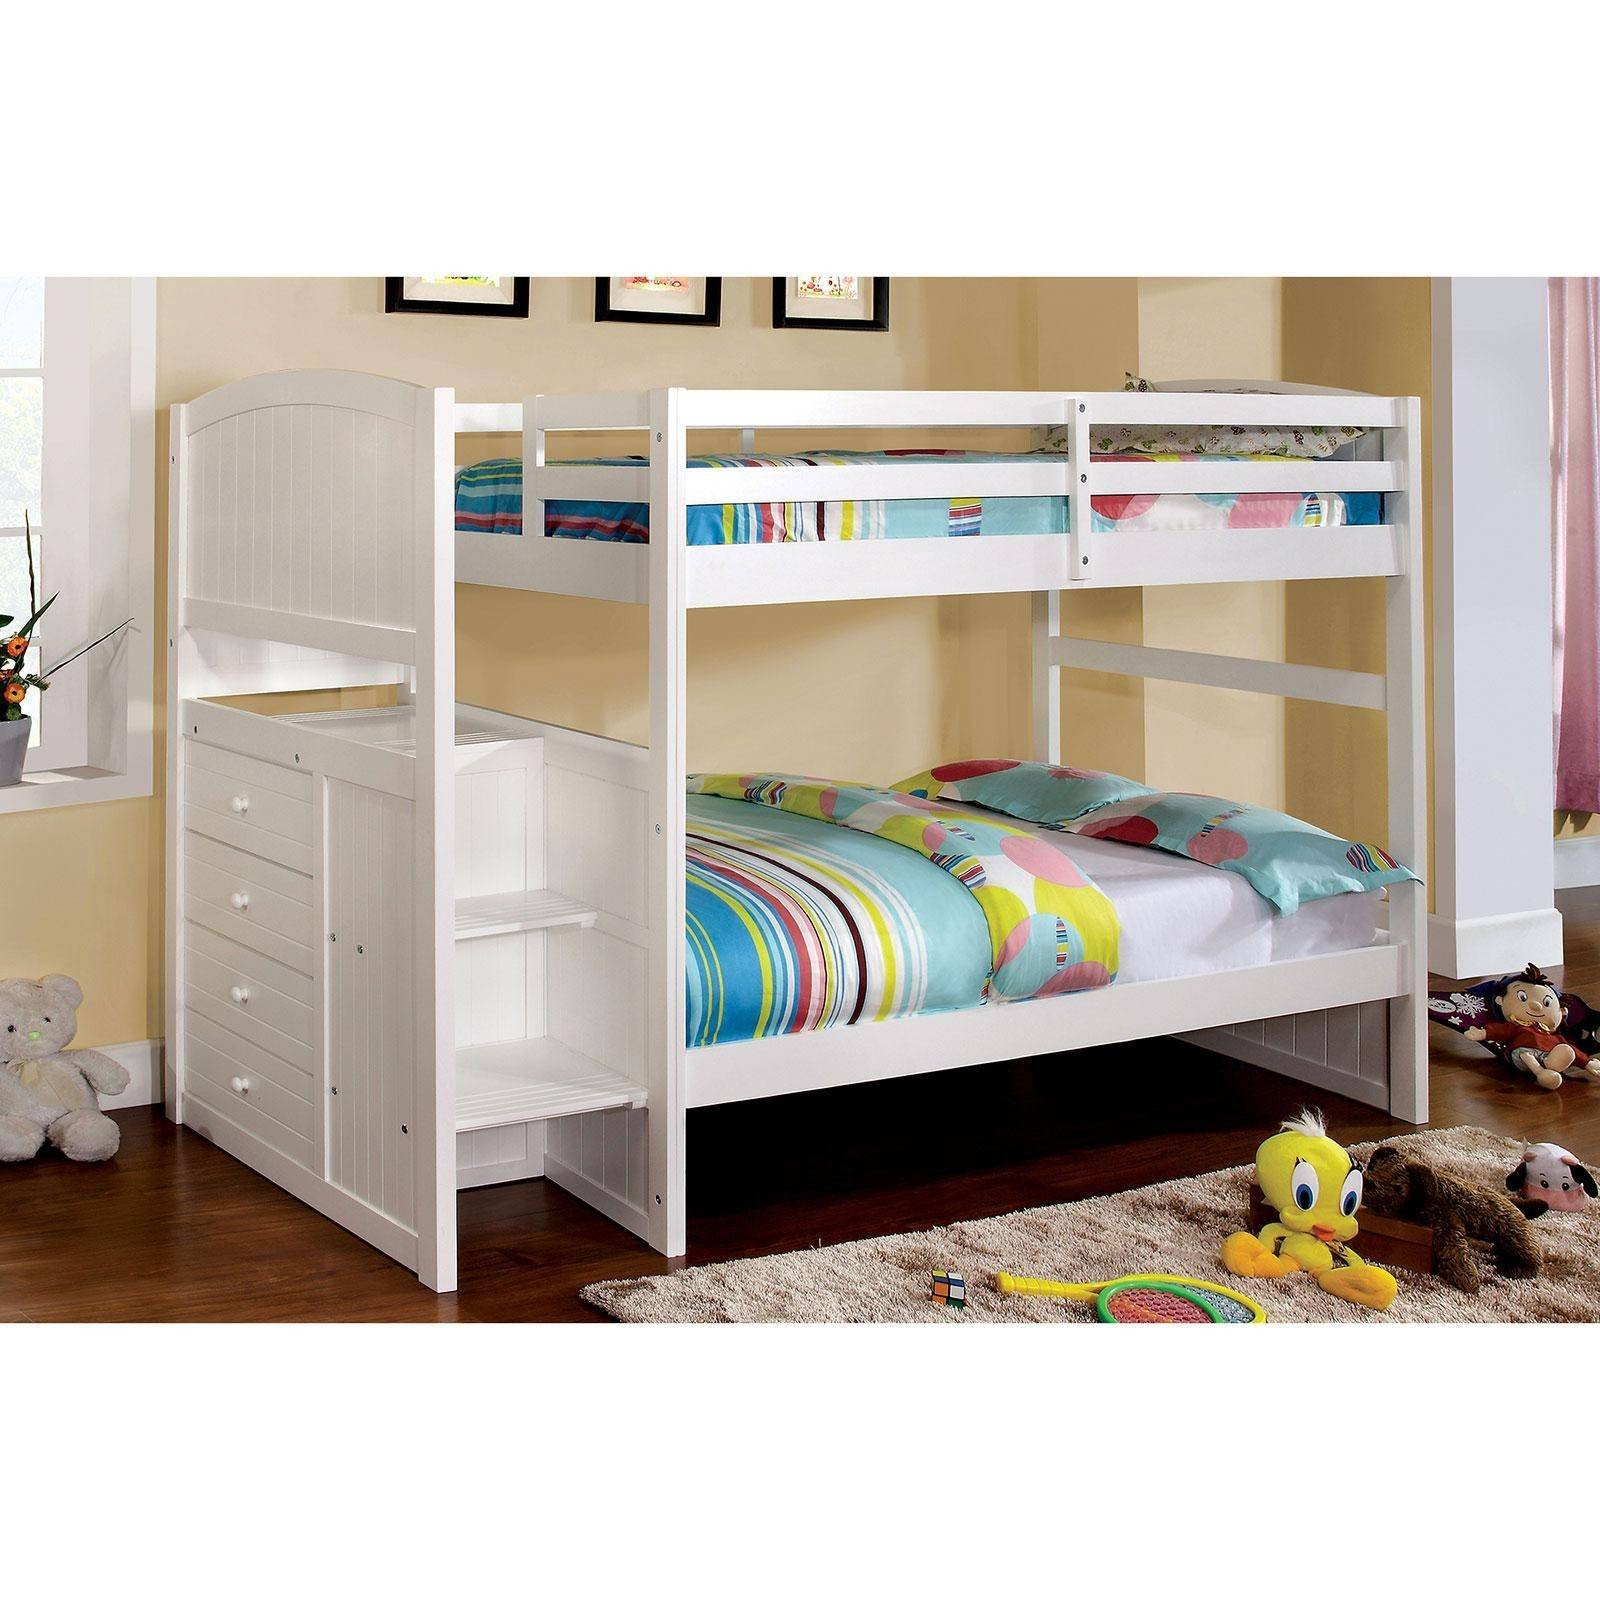 White Cottage Bedroom Furniture Elegant Cottage Wood Full Bunk Bed In White Appenzell by Furniture Of America